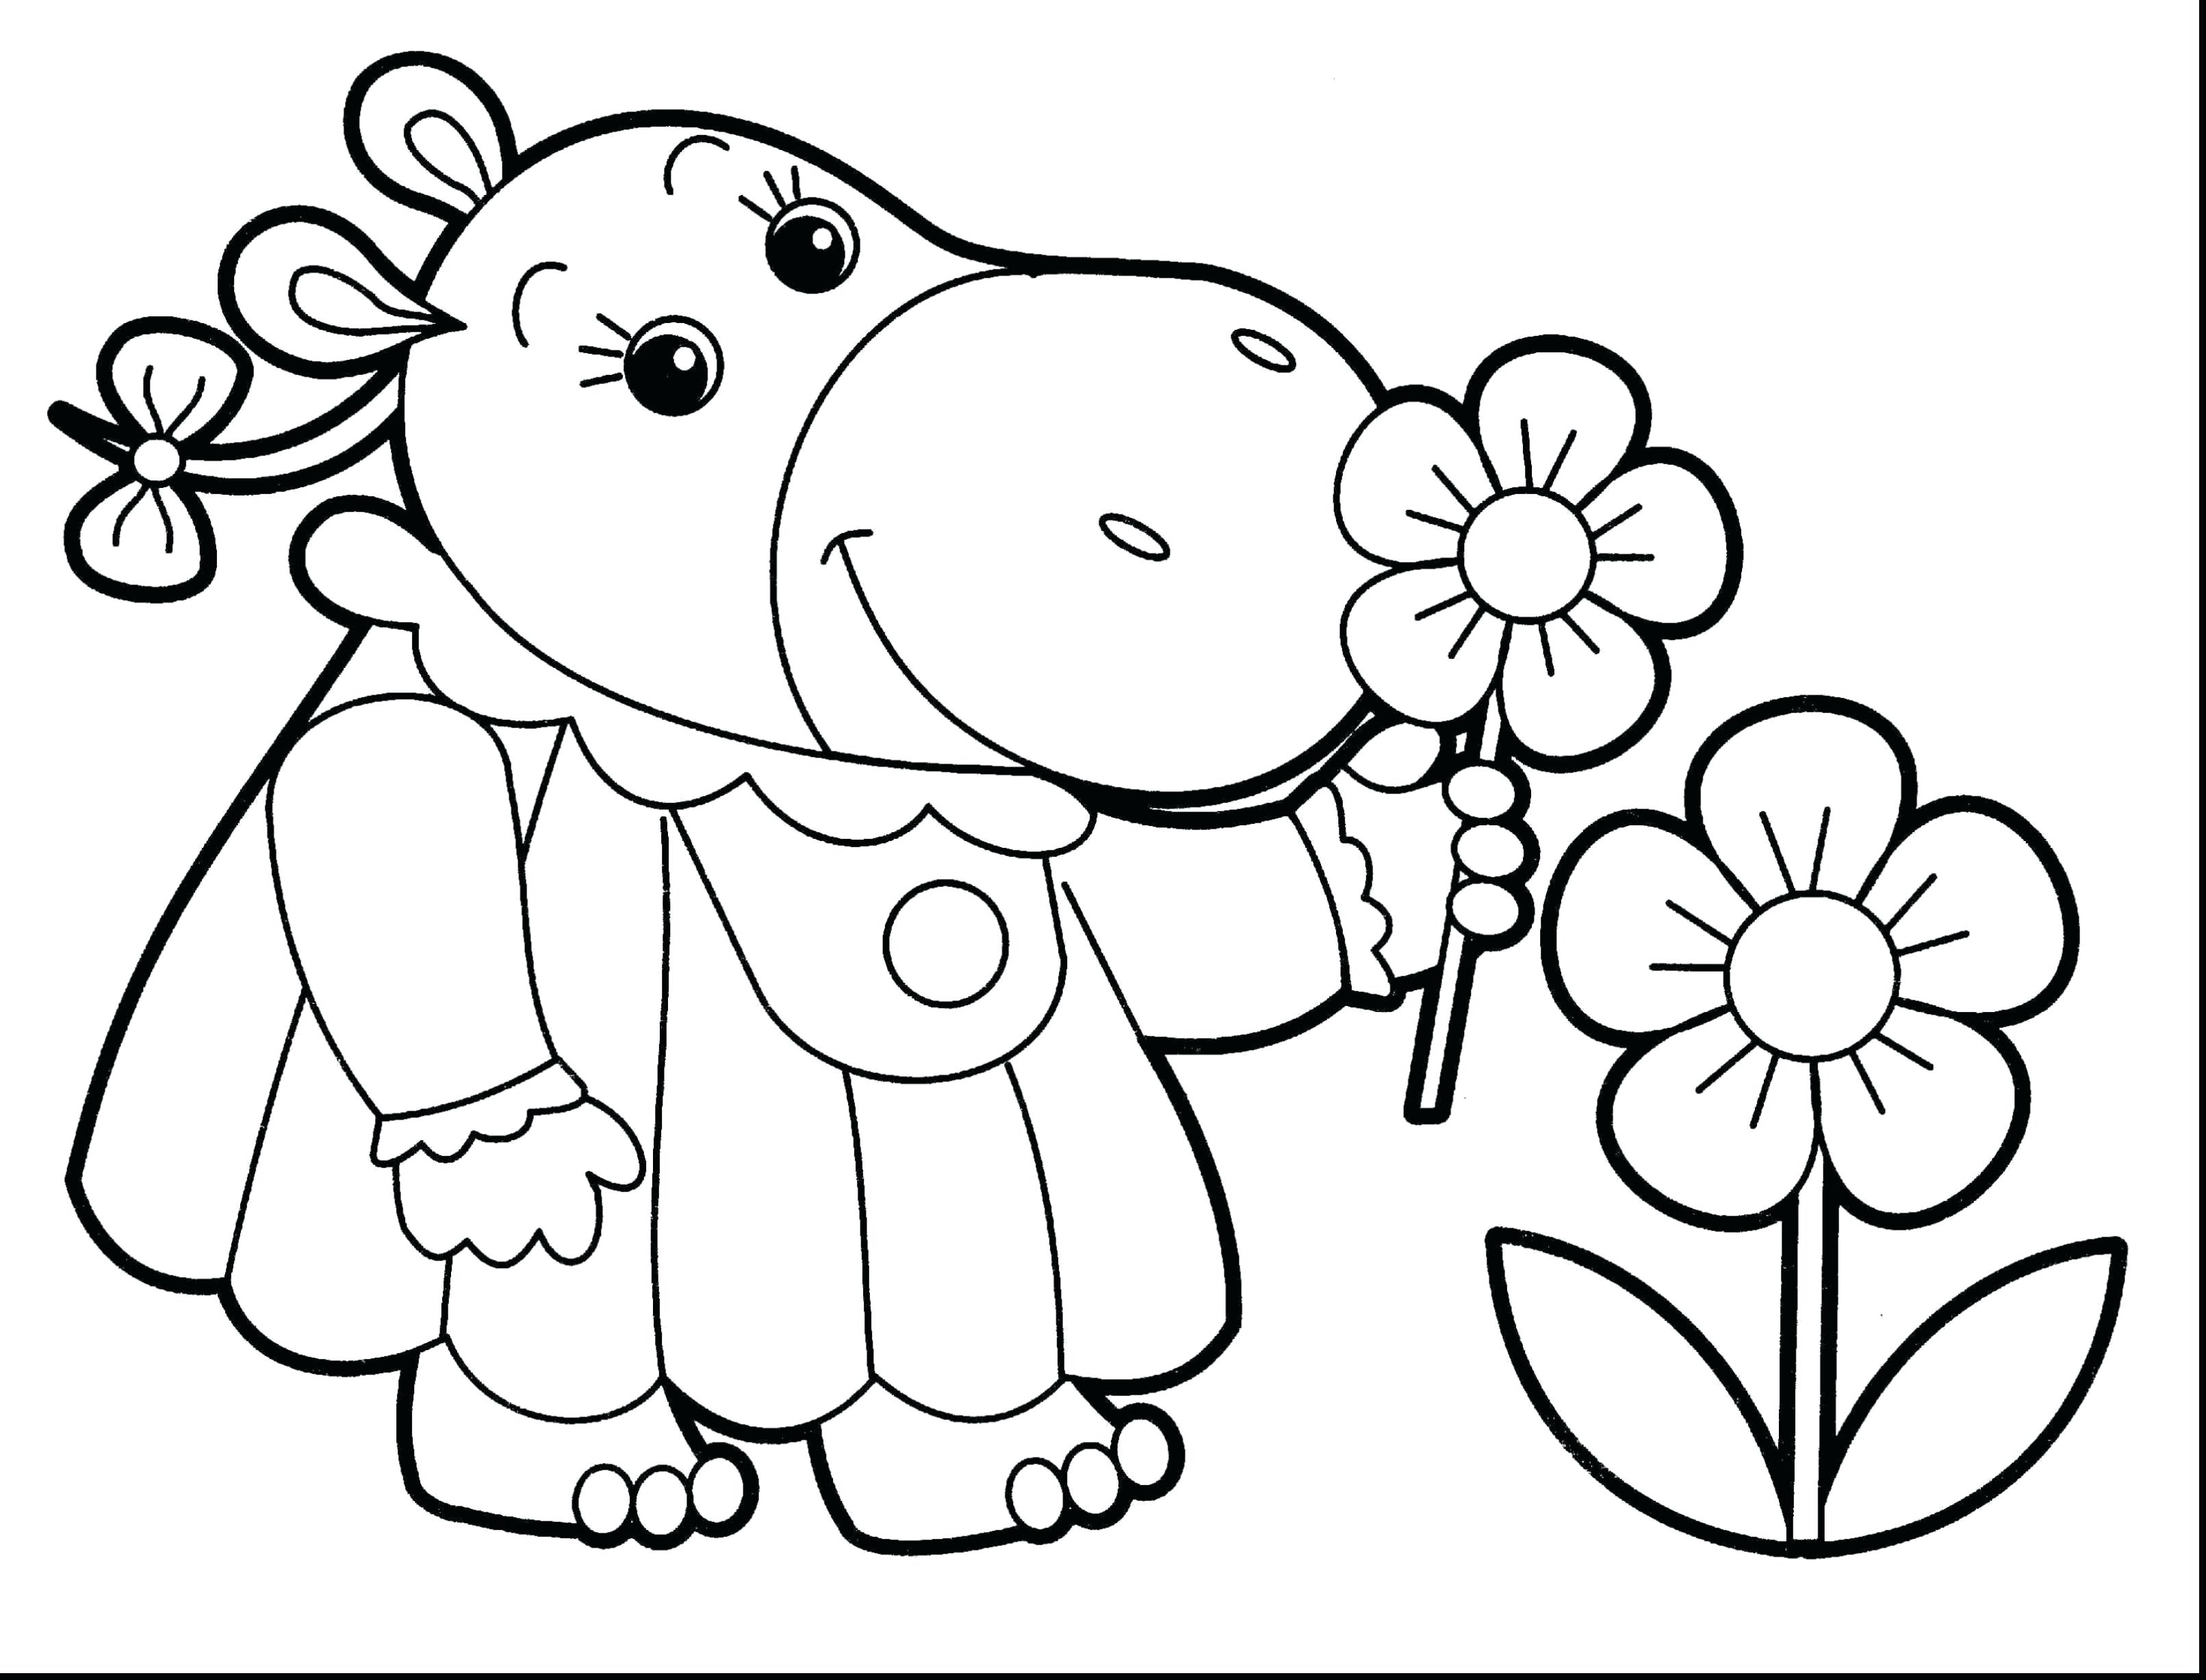 3223x2455 Coloring Pages Lilo And Stitch Coloring Pages Lilo And Stitch